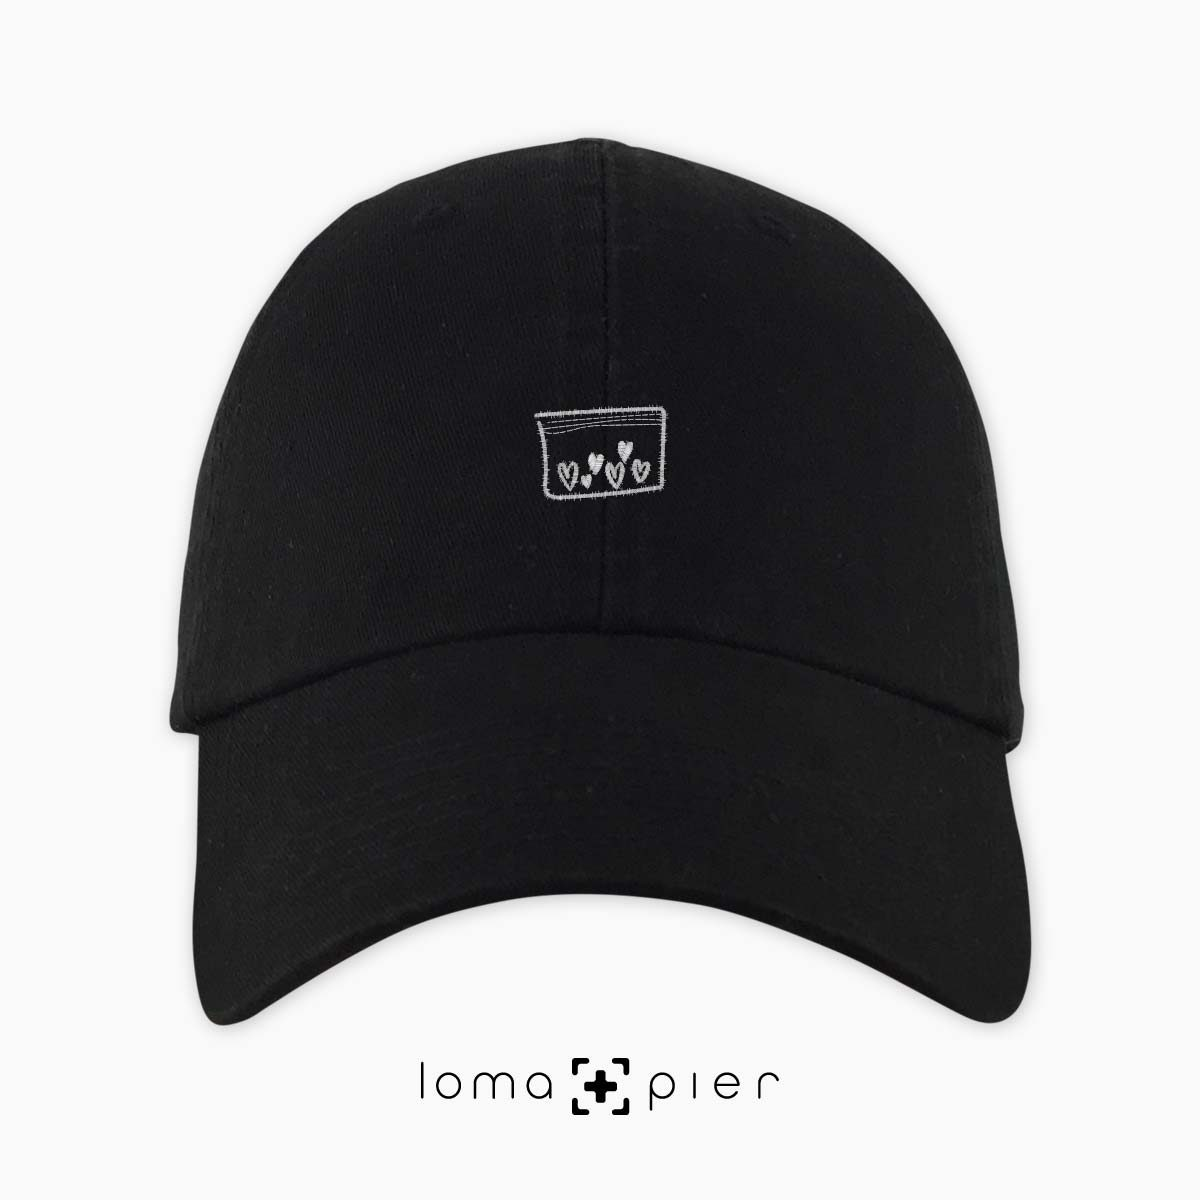 LOVE DRUG icon embroidered on a black unstructured dad hat with white thread by loma+pier hat store made in the USA